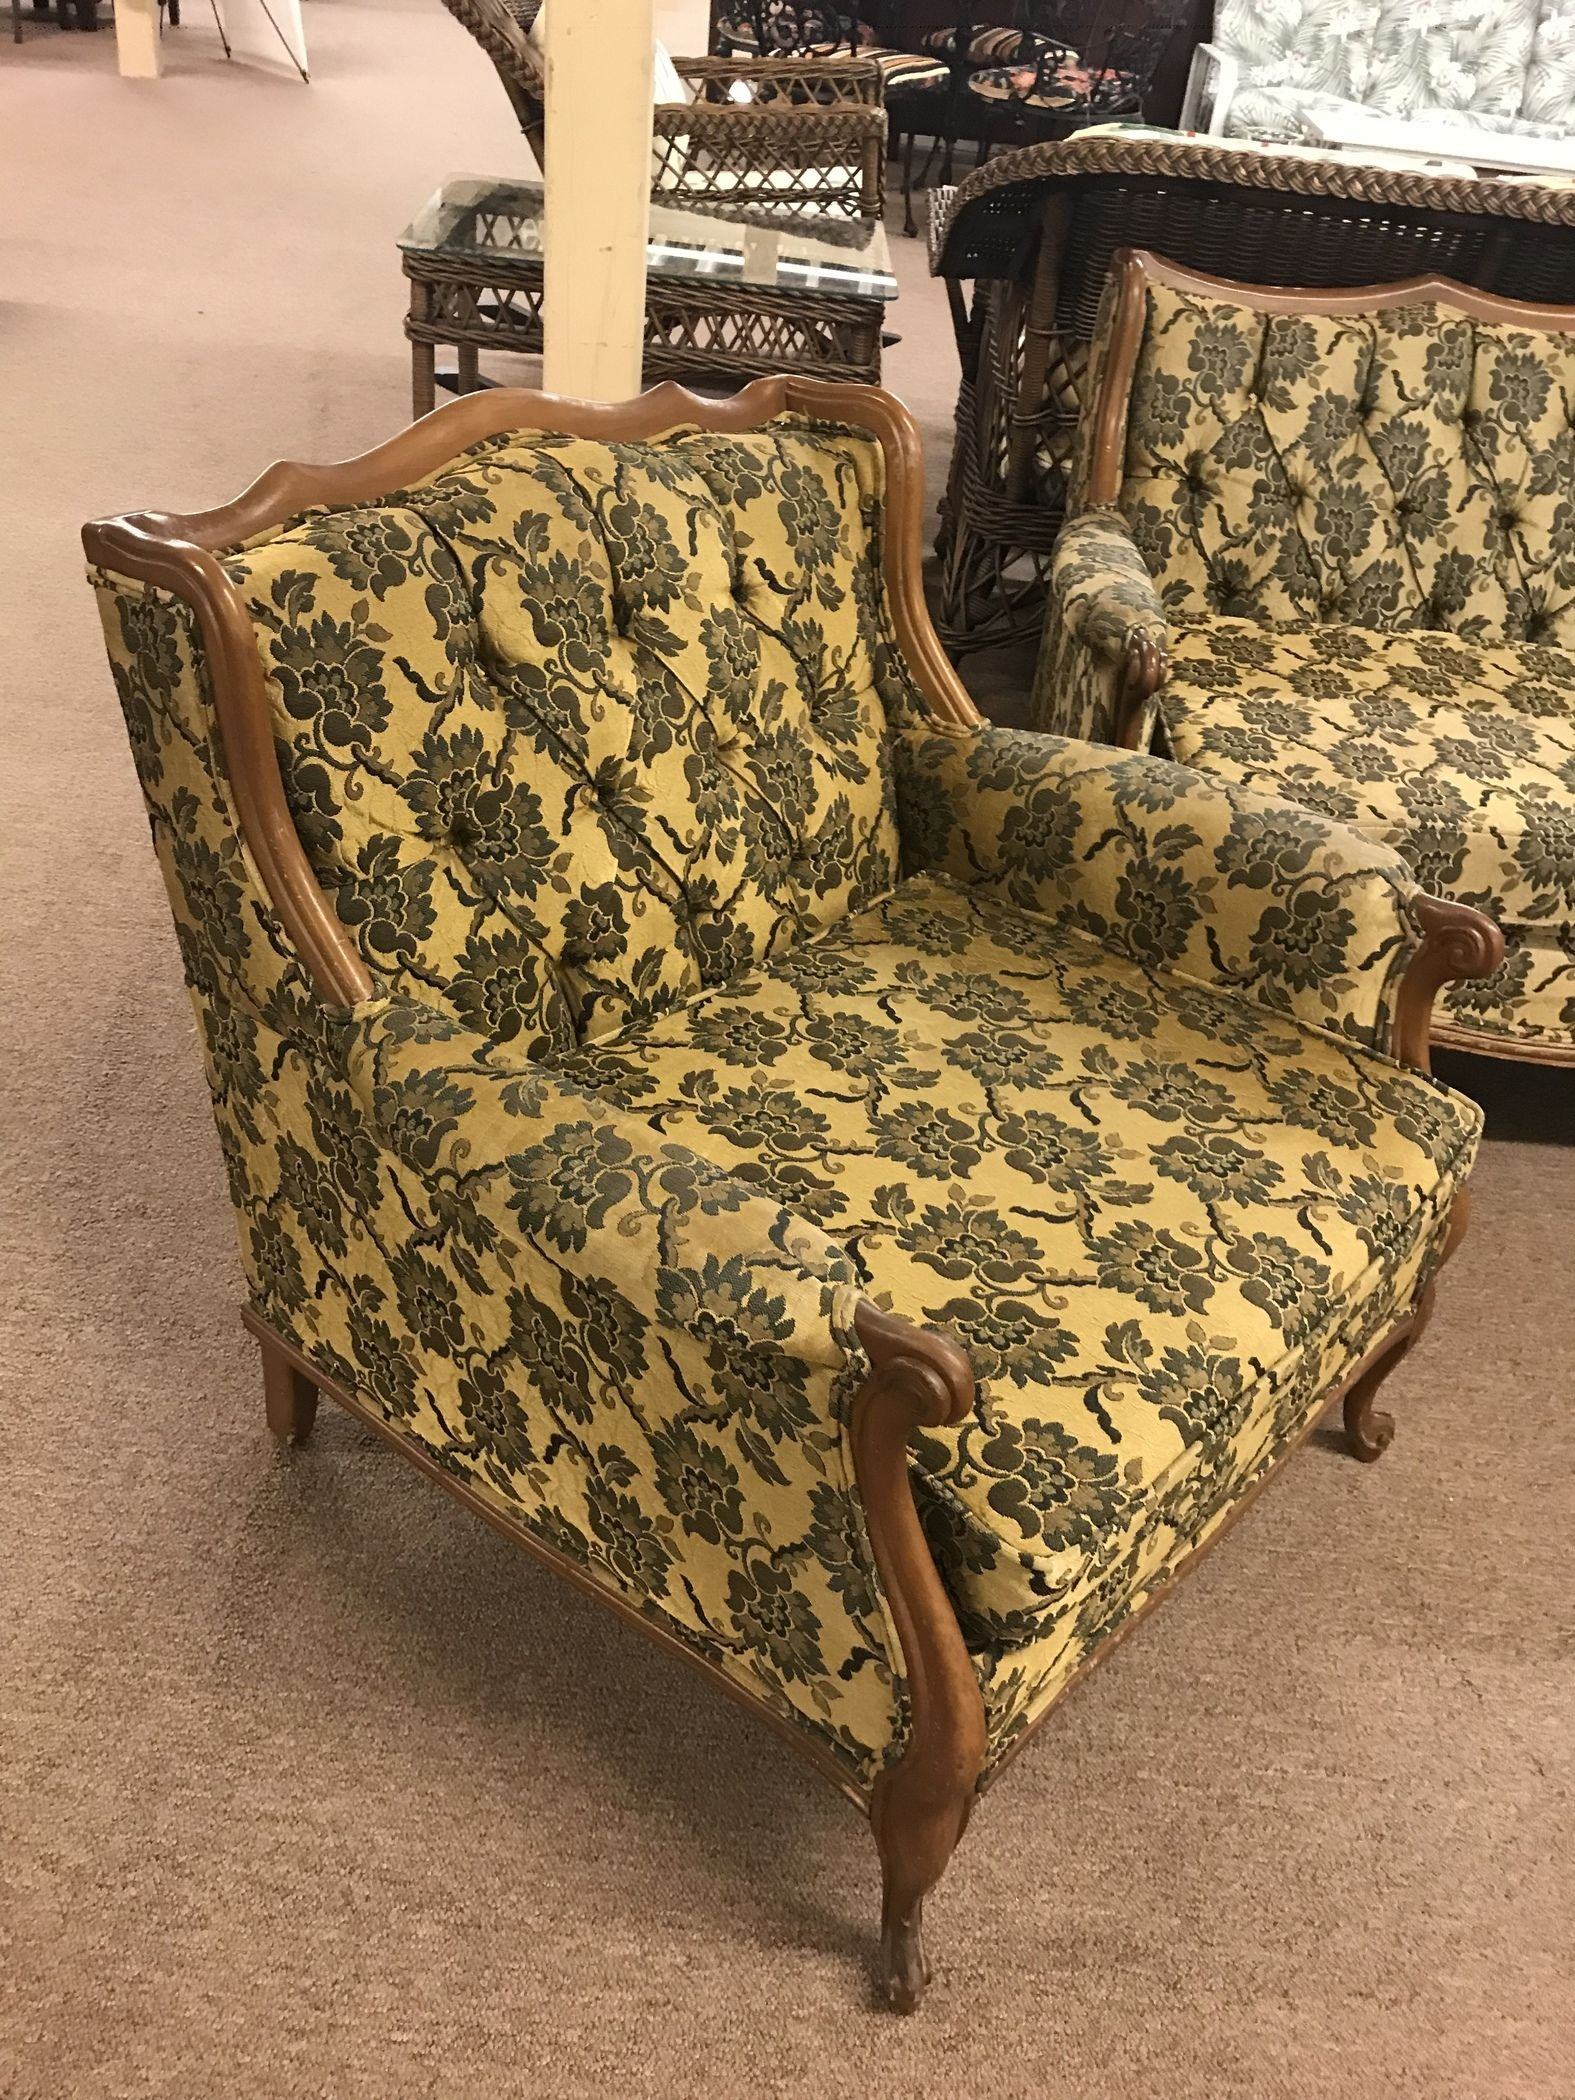 Olive Floral Sofa & Chair Set   Delmarva Furniture Consignment In Floral Sofas And Chairs (View 2 of 15)